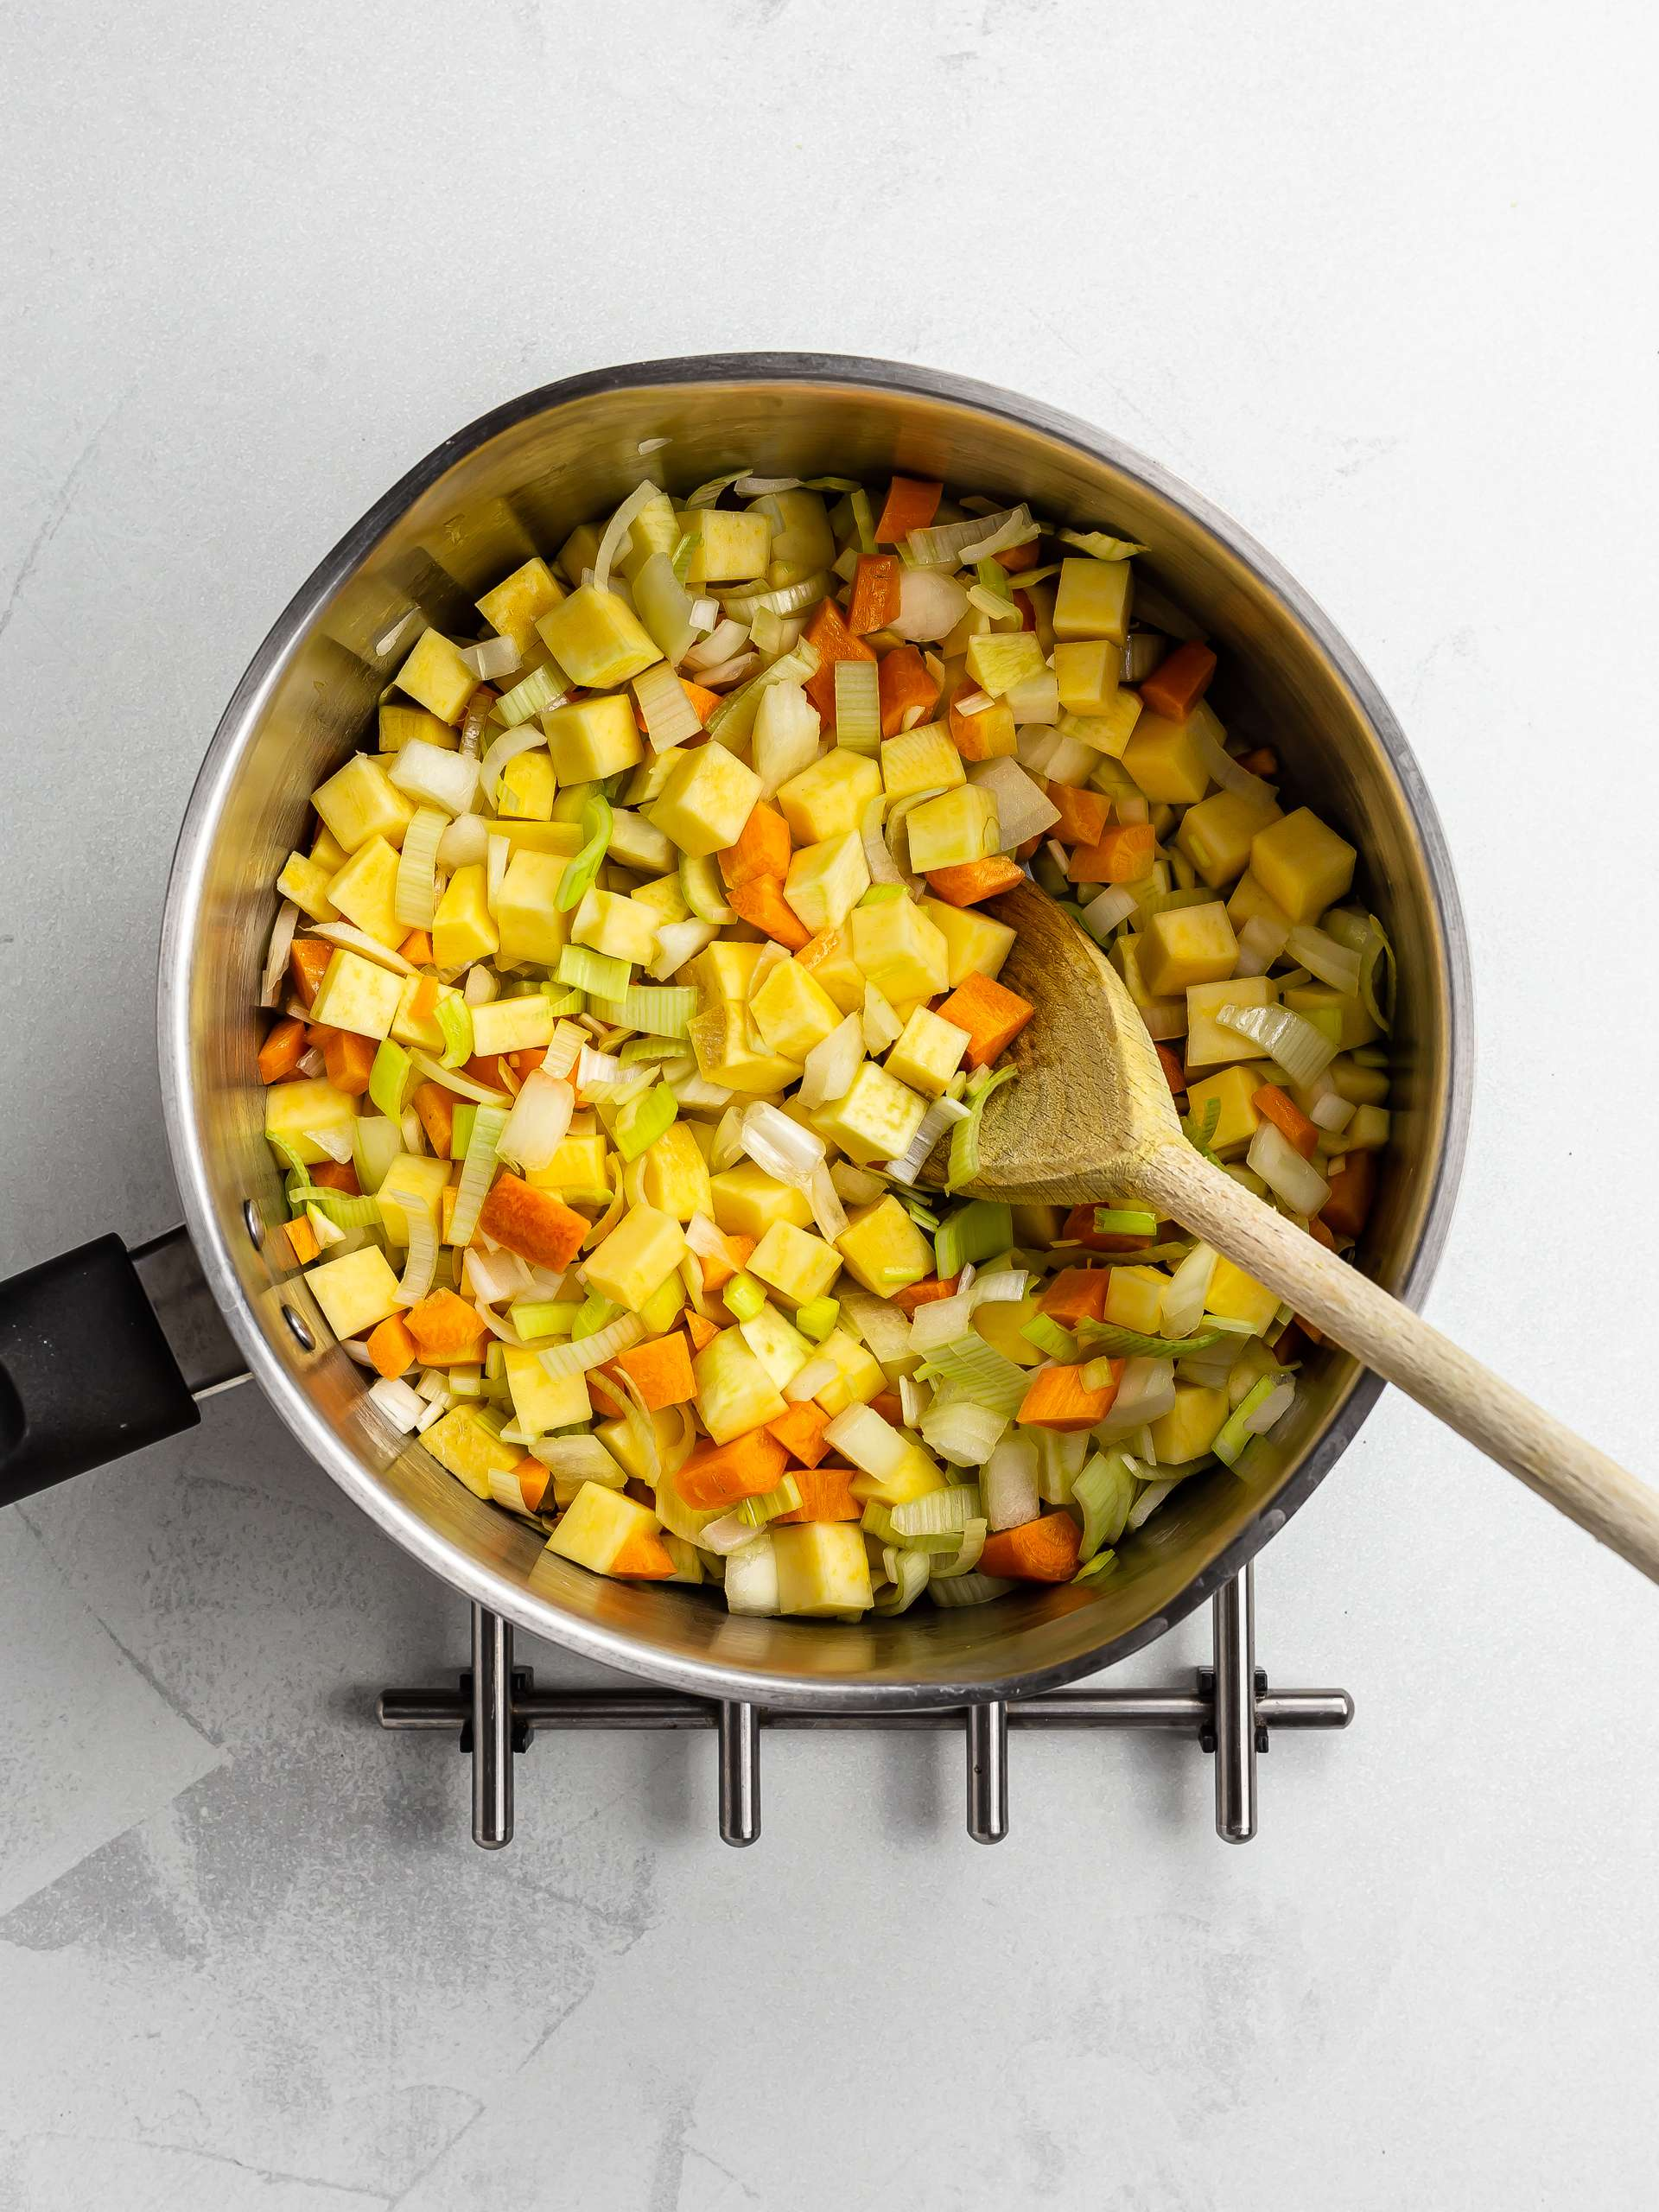 scotch broth vegetables in a pot